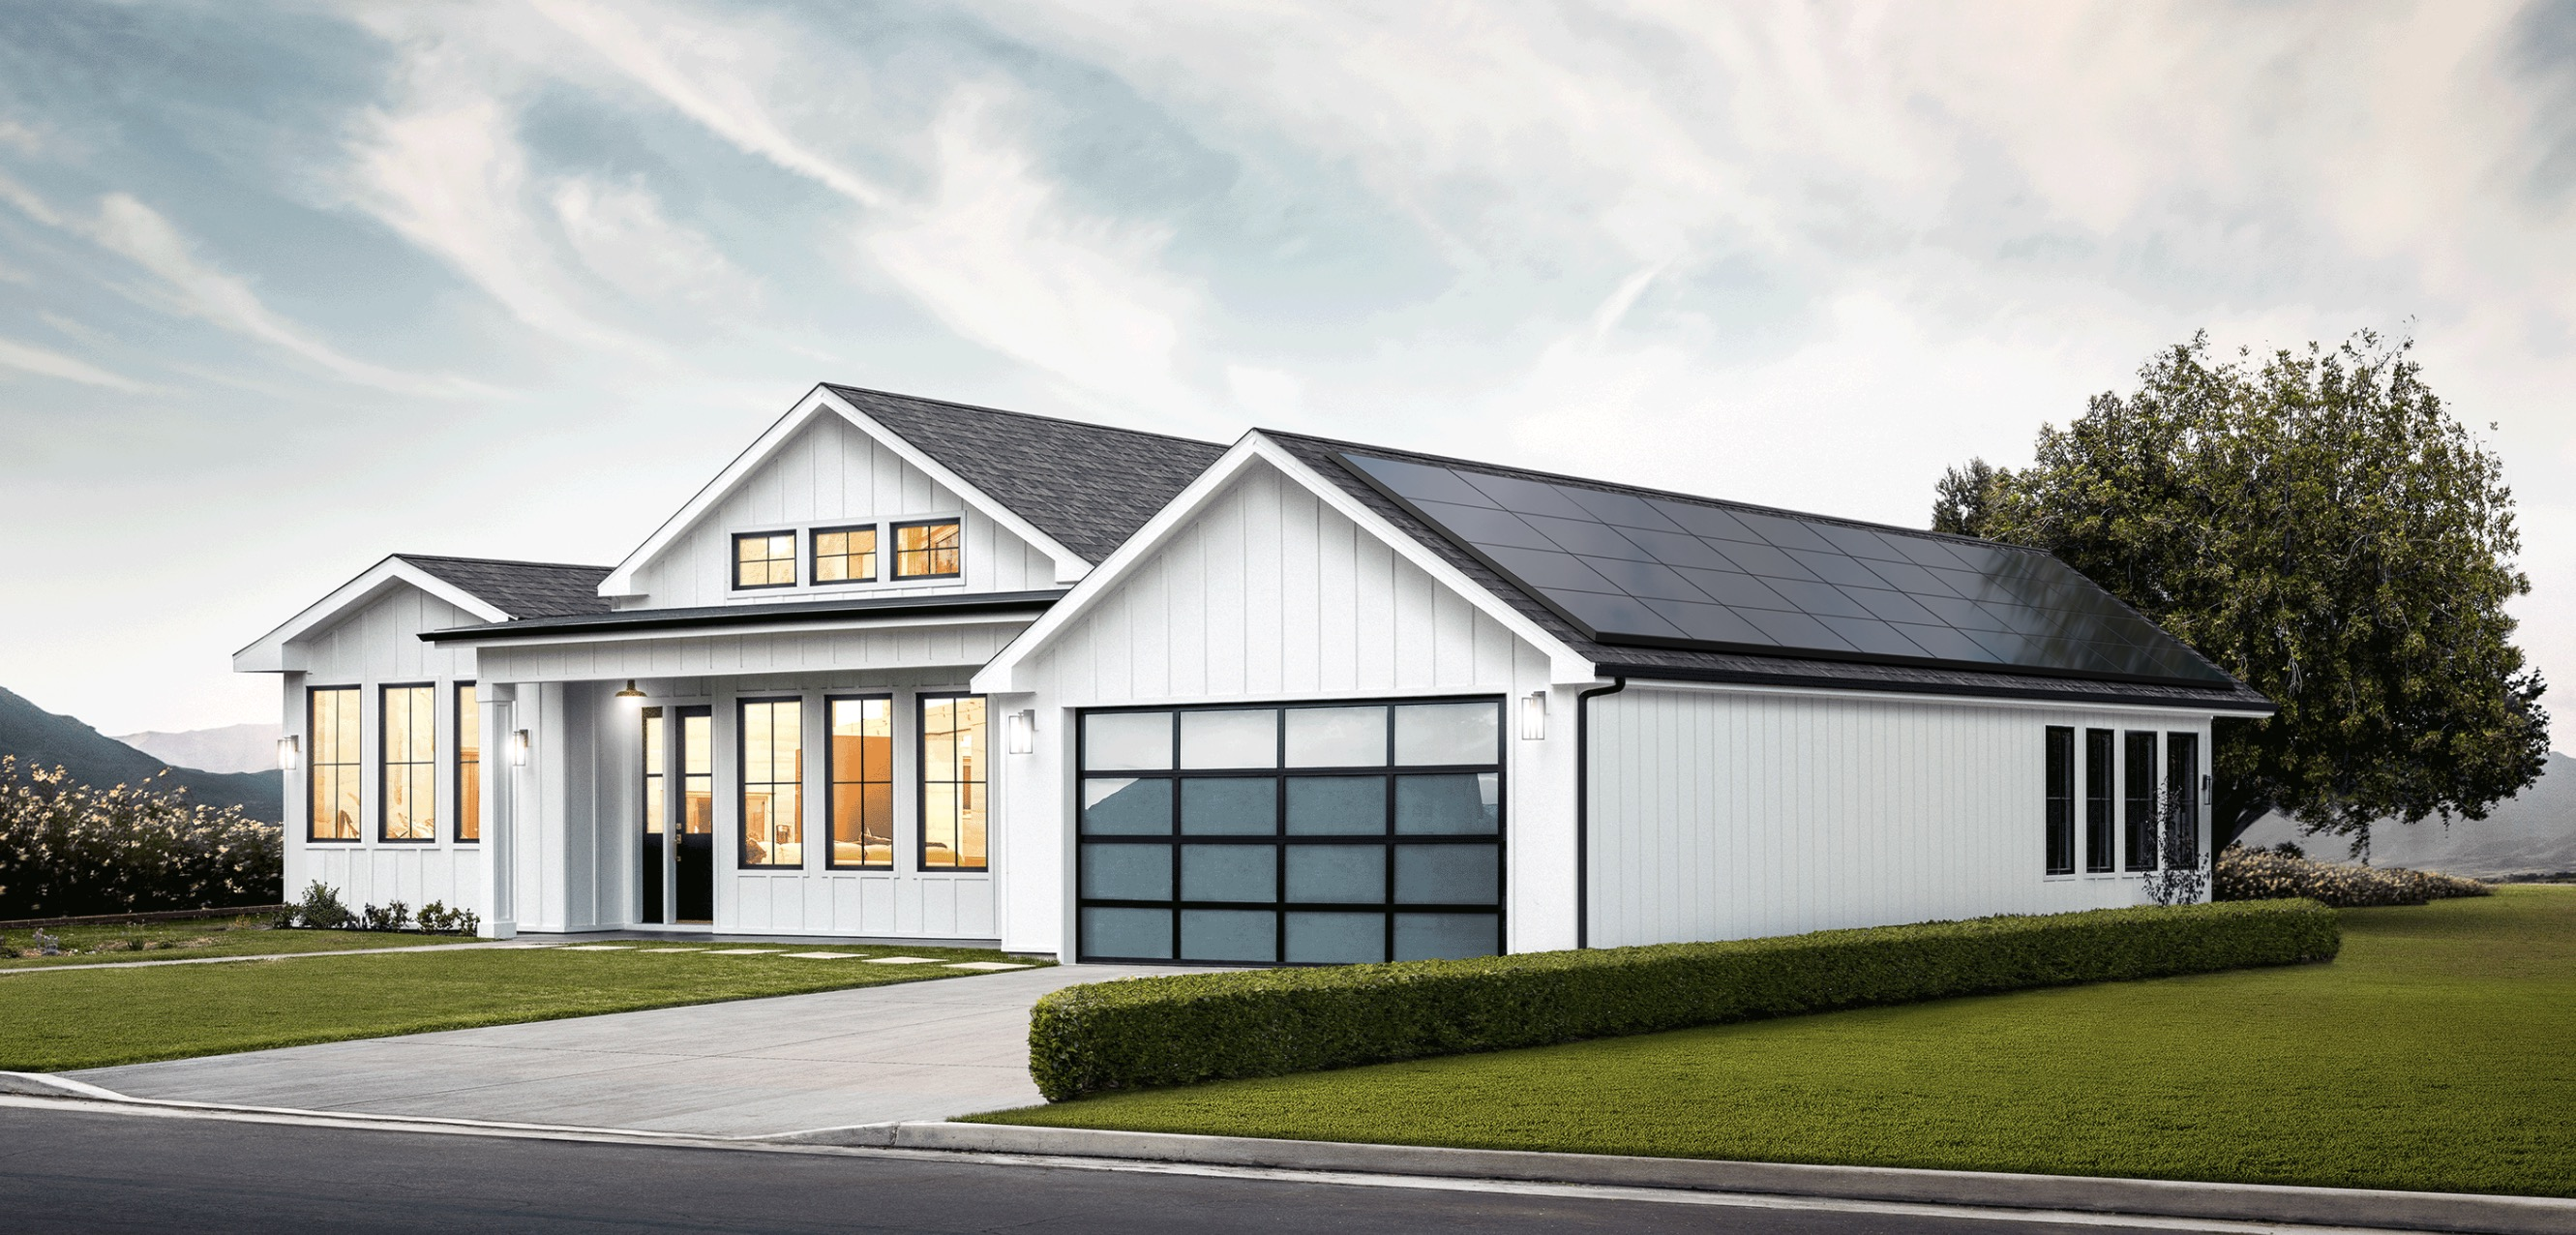 Tesla Starts Solar Price Matching Reducing The Cost Of Solar Here S How To Benefit Electrek